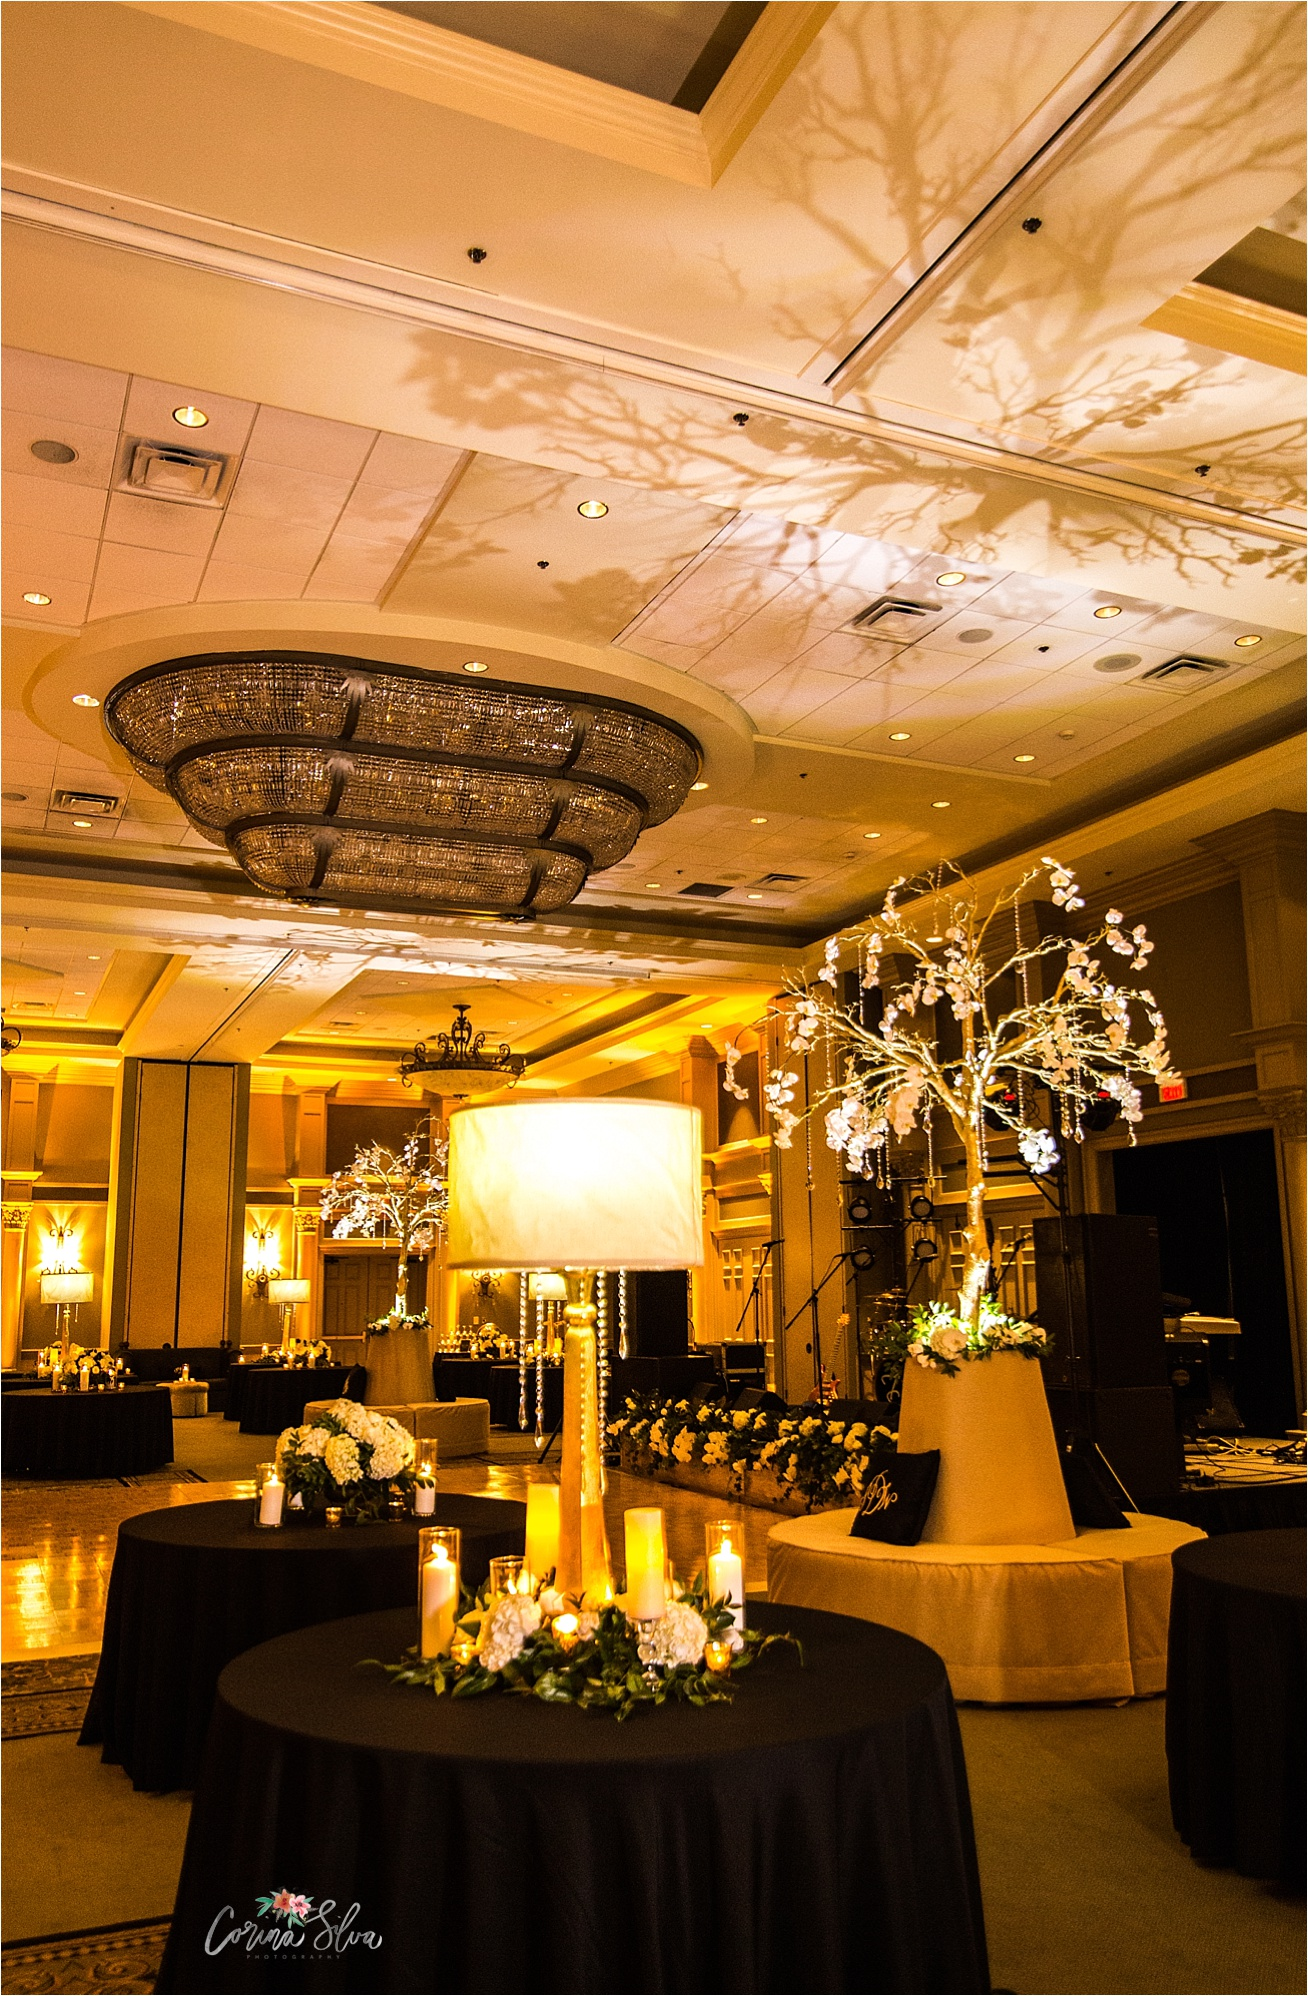 RSG-Event-and-Designs-luxury-wedding-decor-photos, Corina-Silva-Studios_0036.jpg